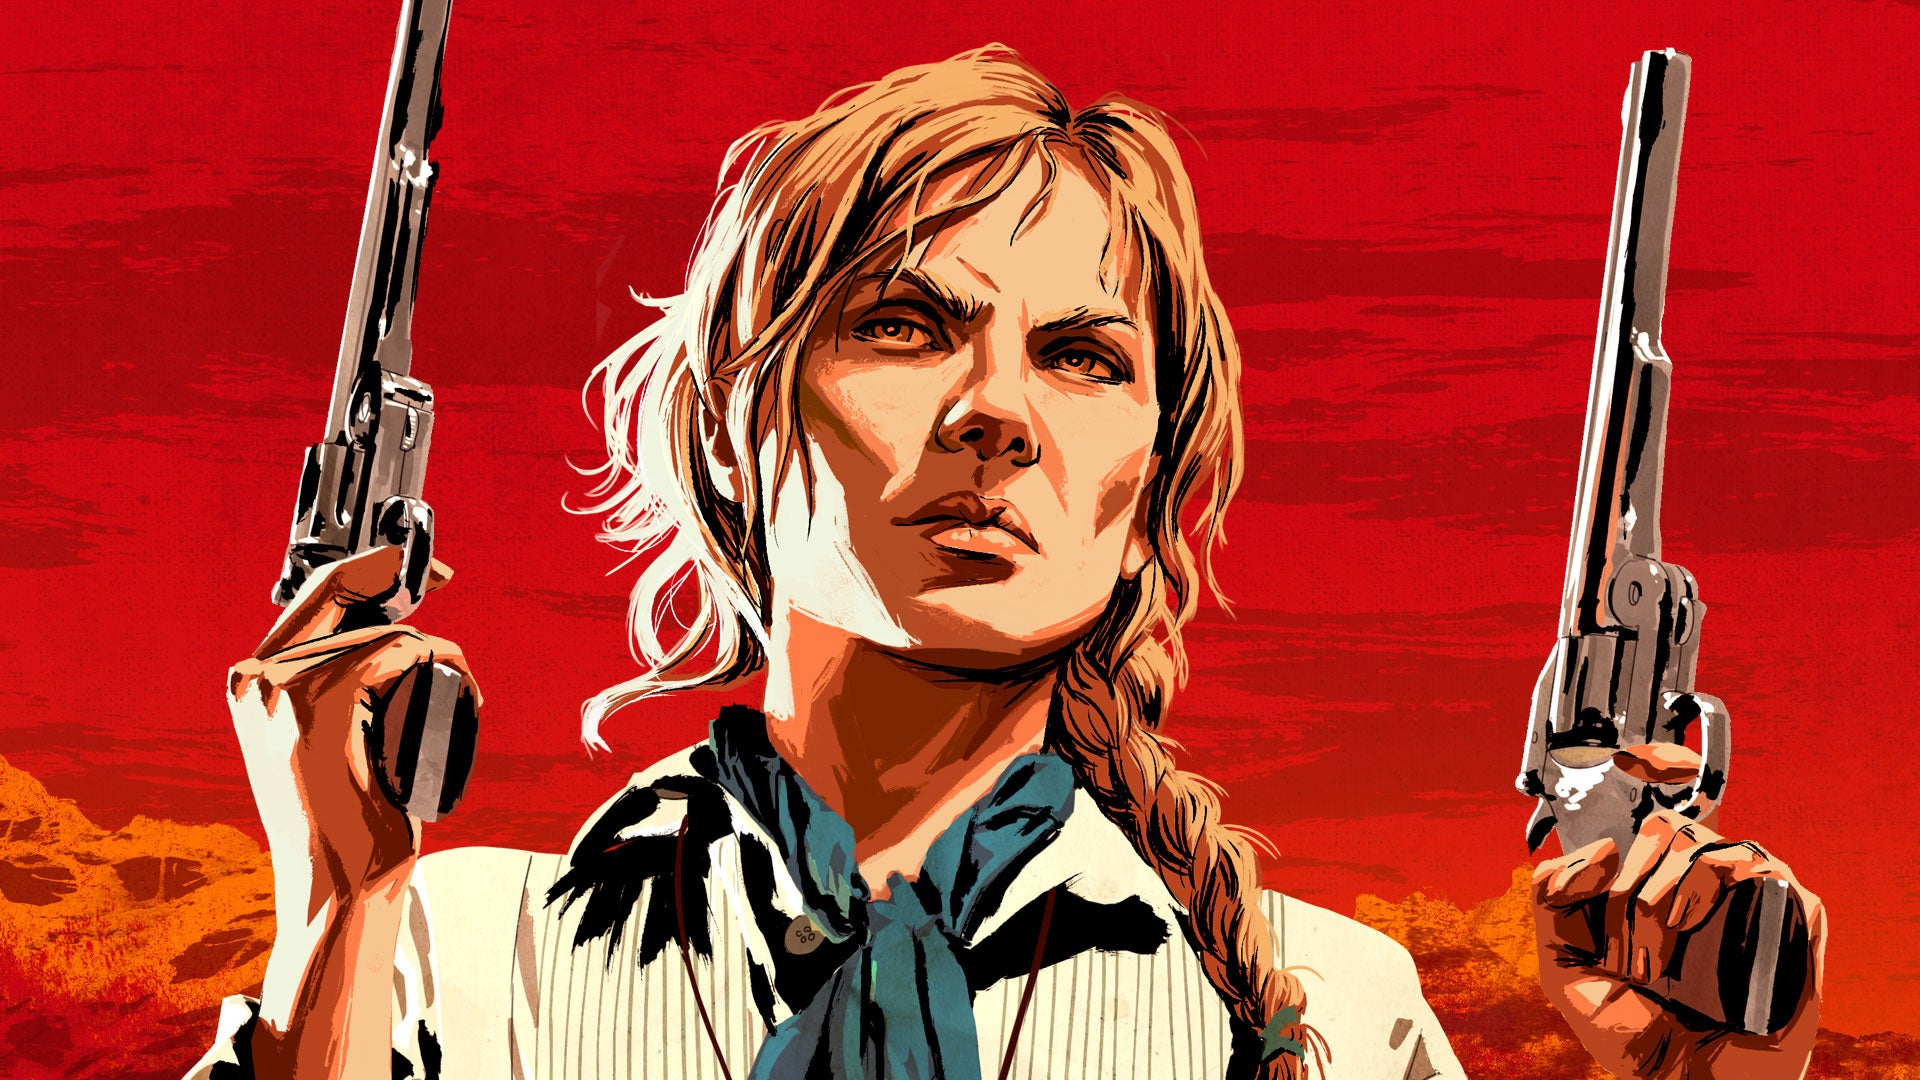 The Pinkertons Are Still Around, Suing Over Red Dead Redemption 2